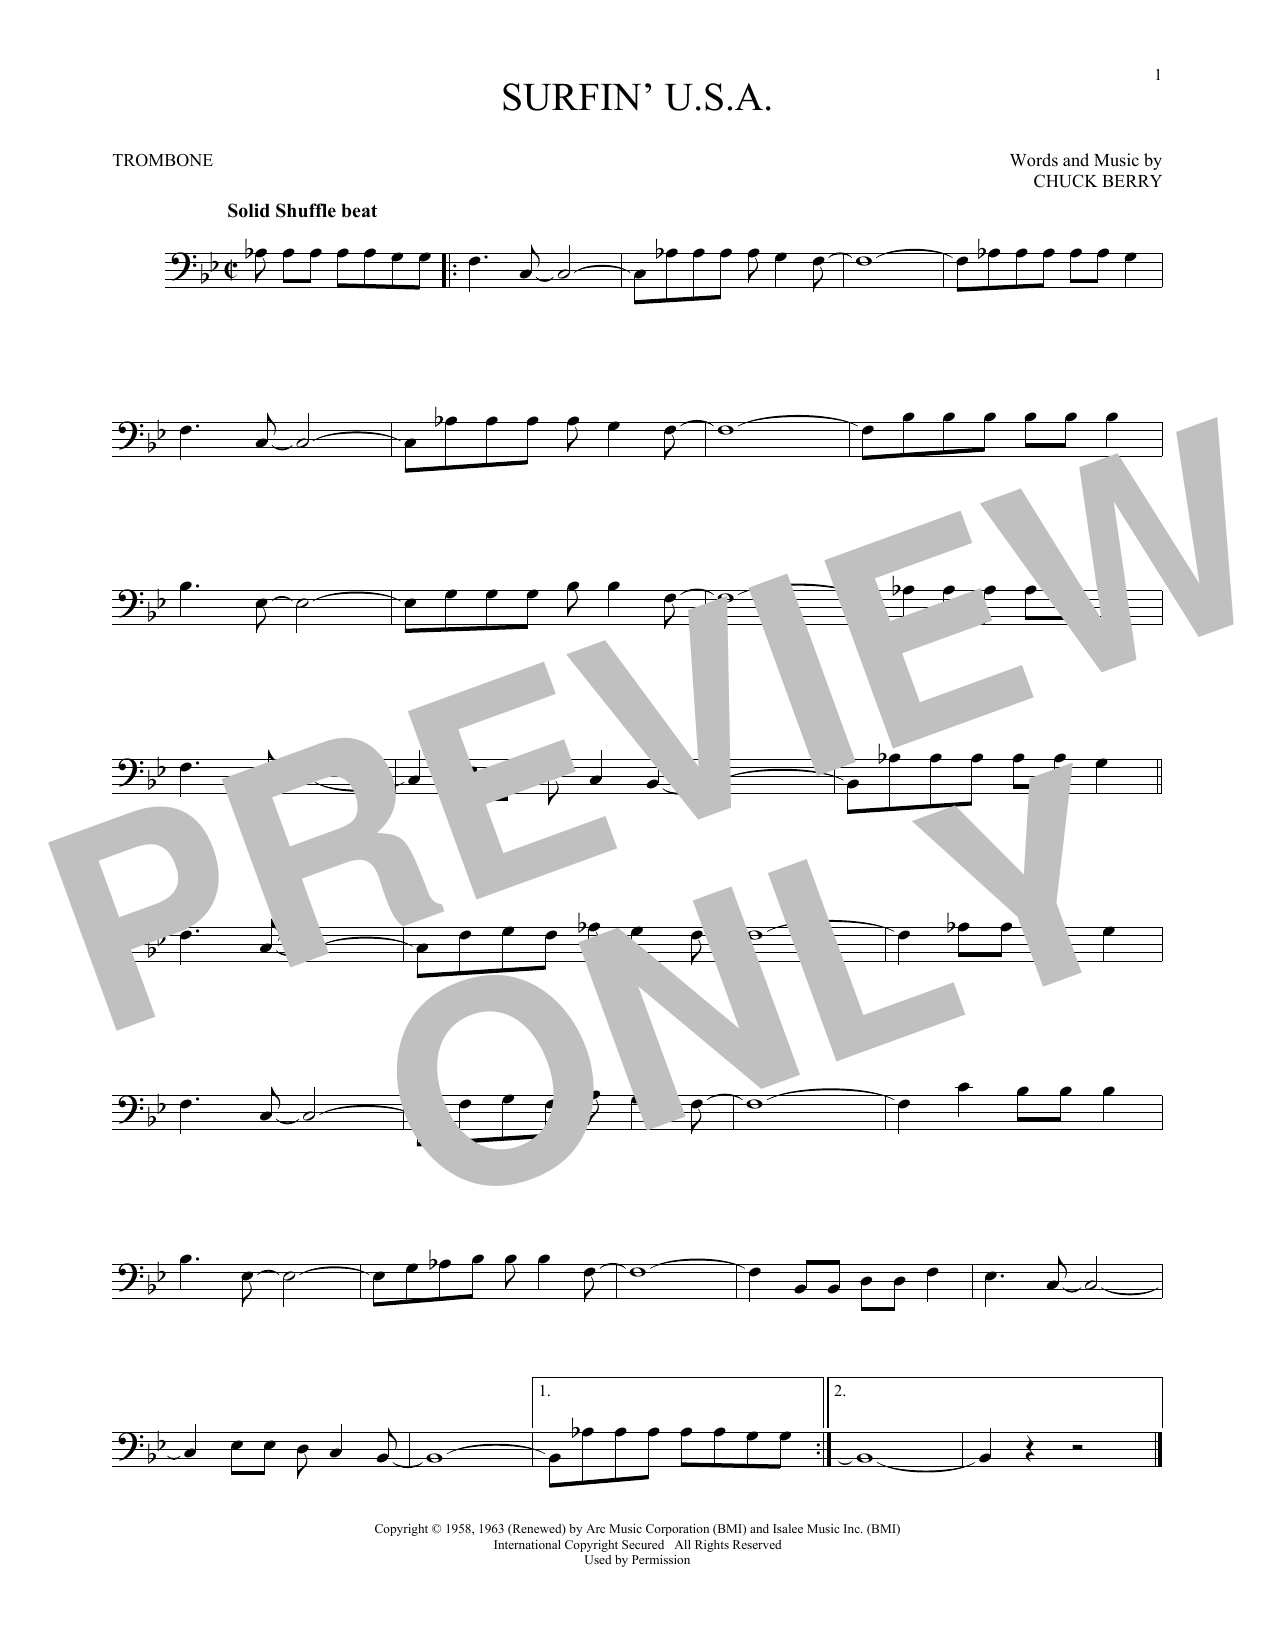 The Beach Boys 'Surfin' U S A ' Sheet Music Notes, Chords | Download  Printable Trombone Solo - SKU: 166952